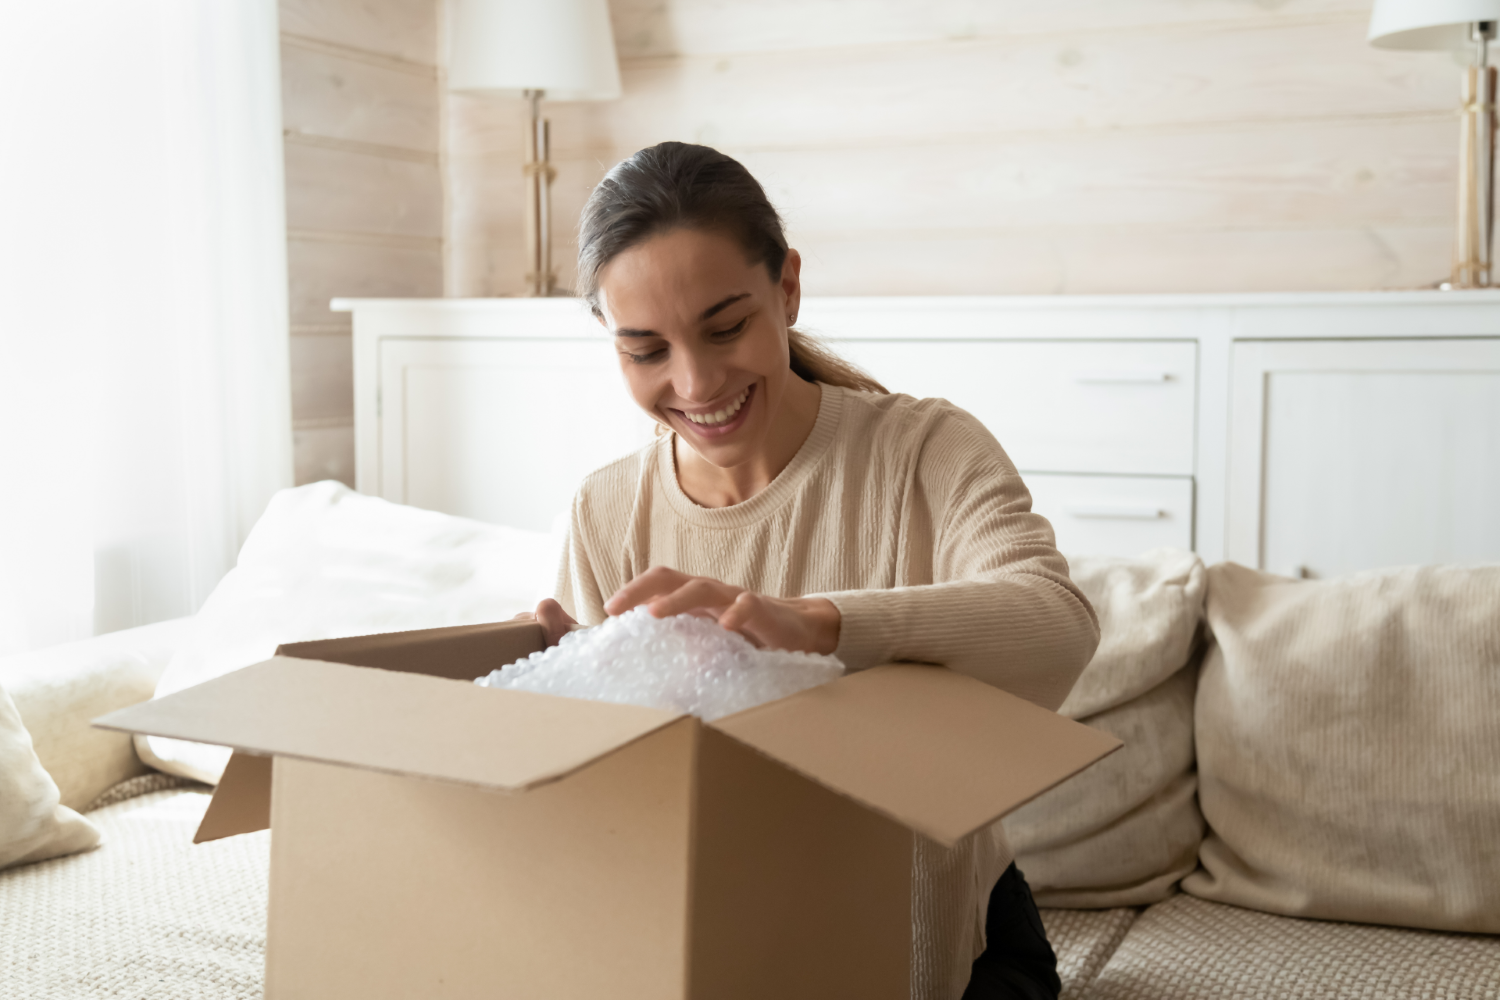 A picture of a joyful person opening a box, representing the potential of a customer value proposition design to allow you to delight your customers.